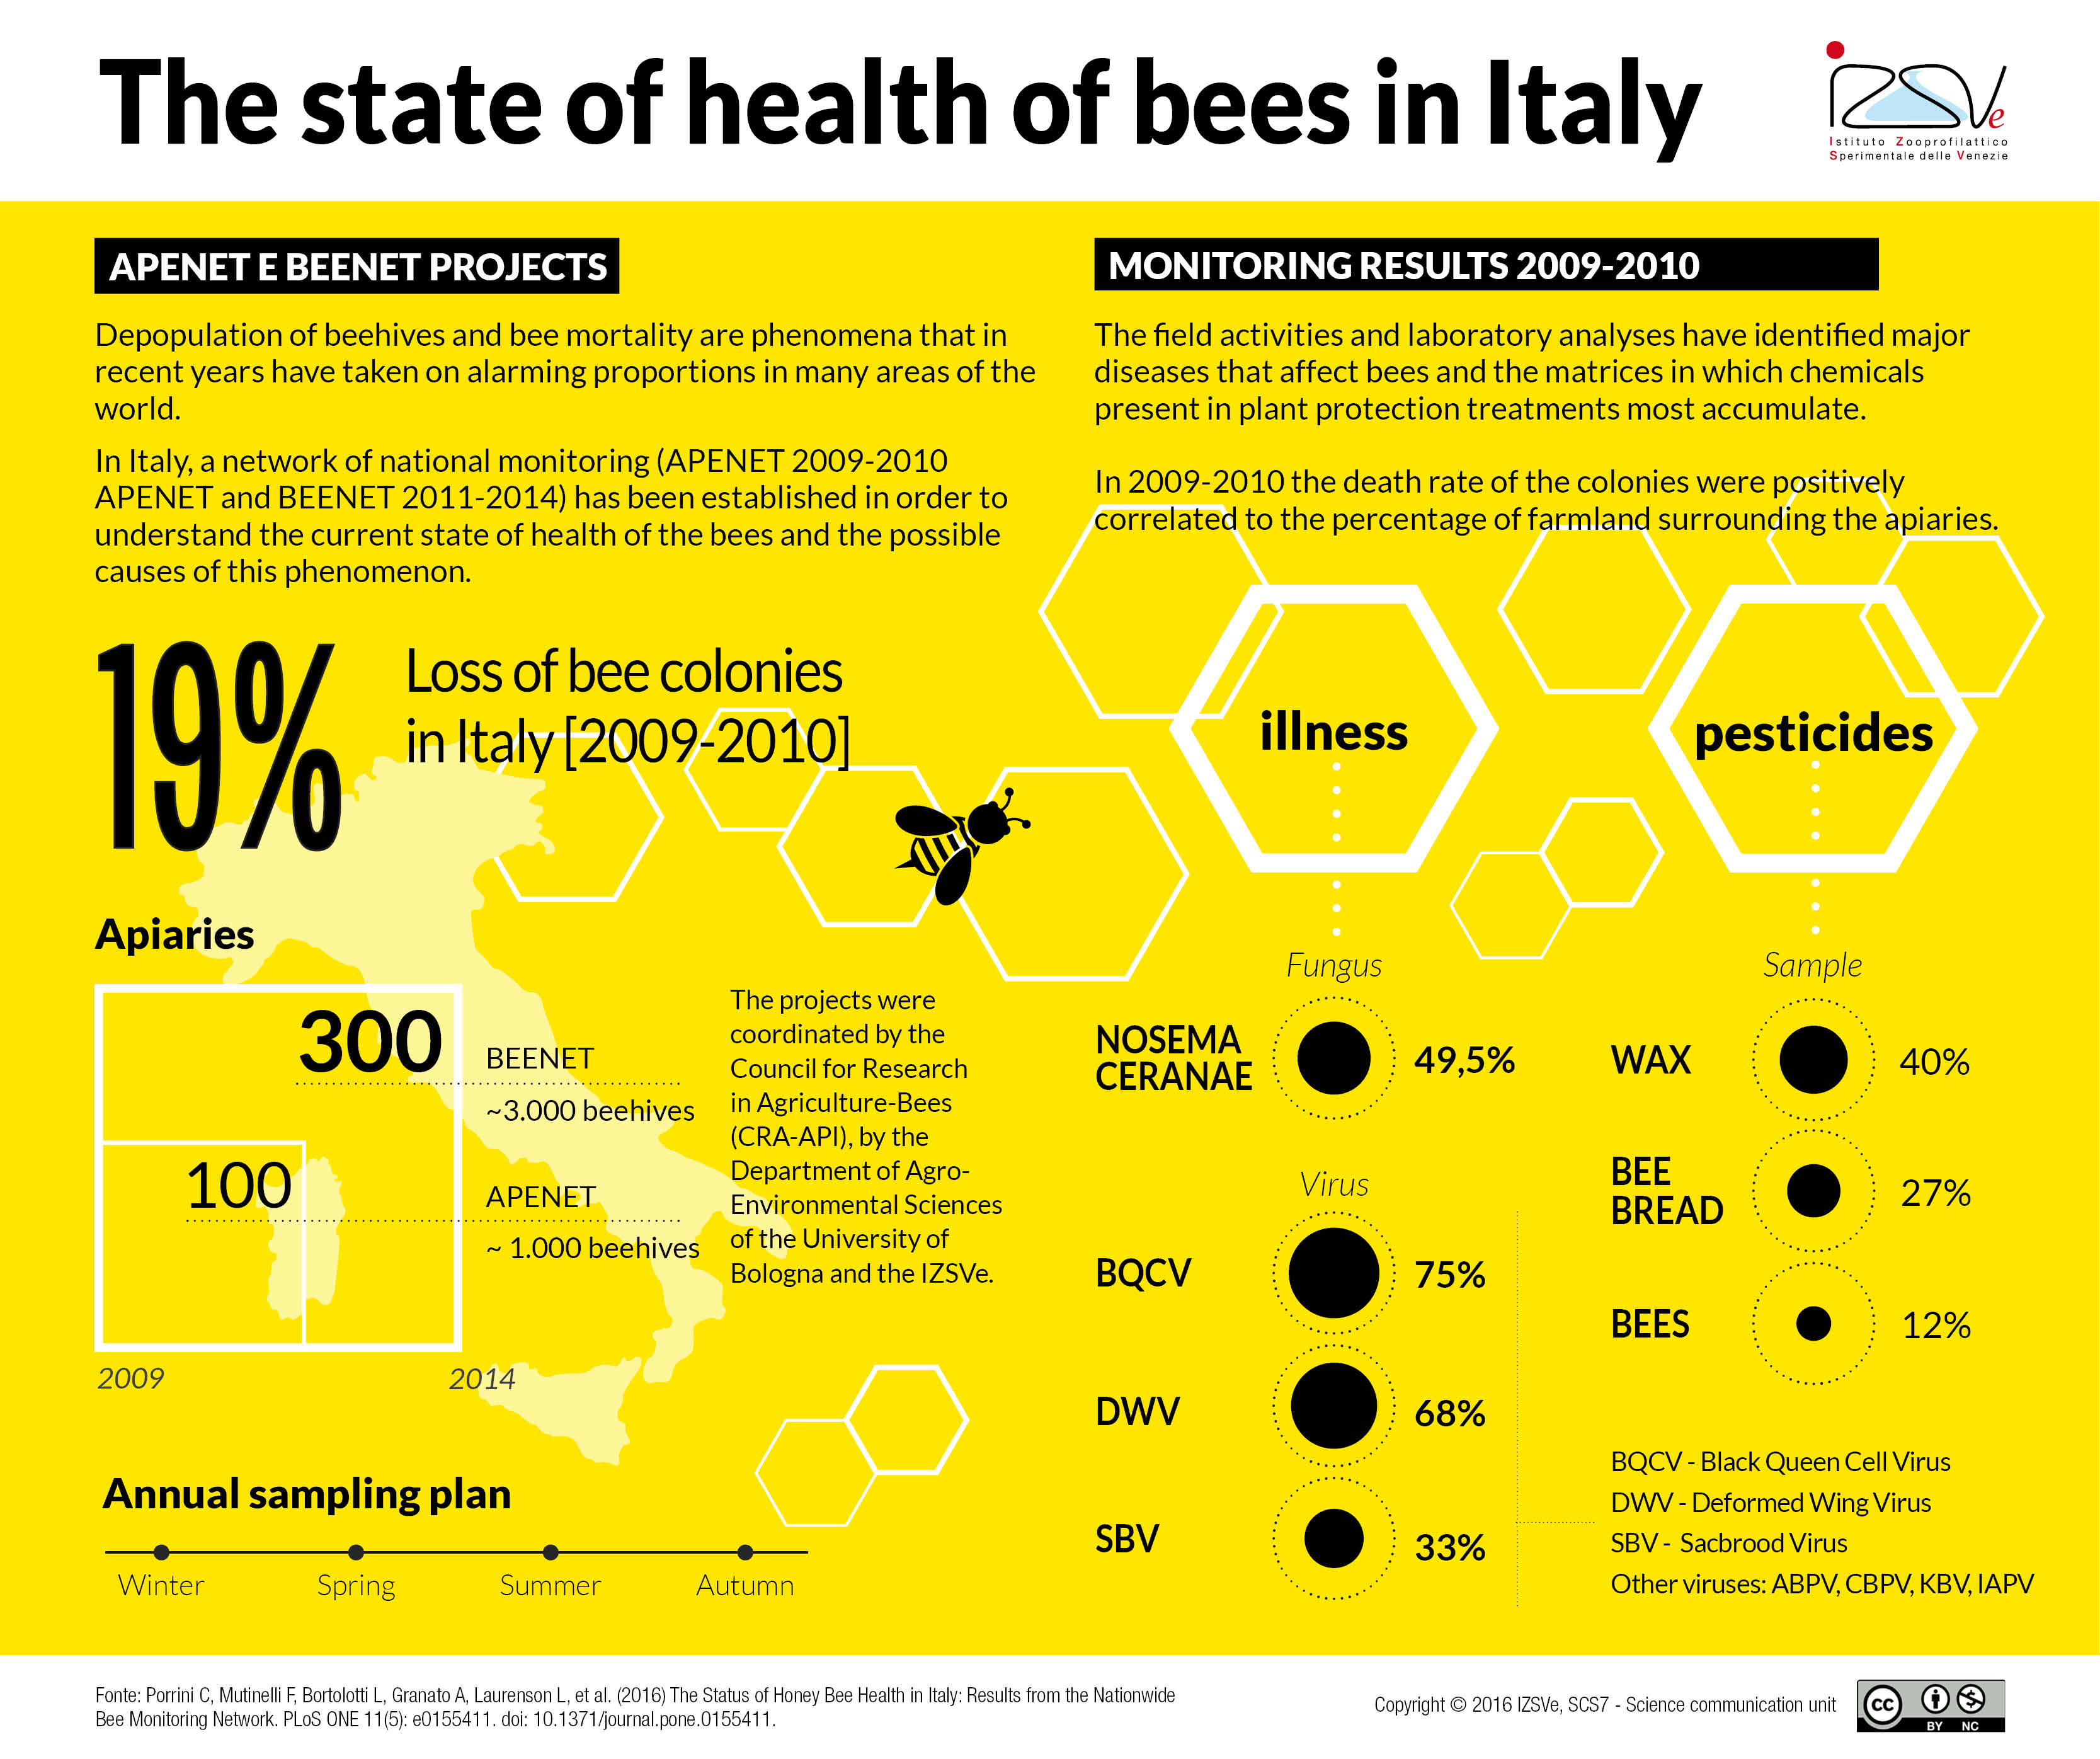 The state of bee health in Italy. National monitoring results.